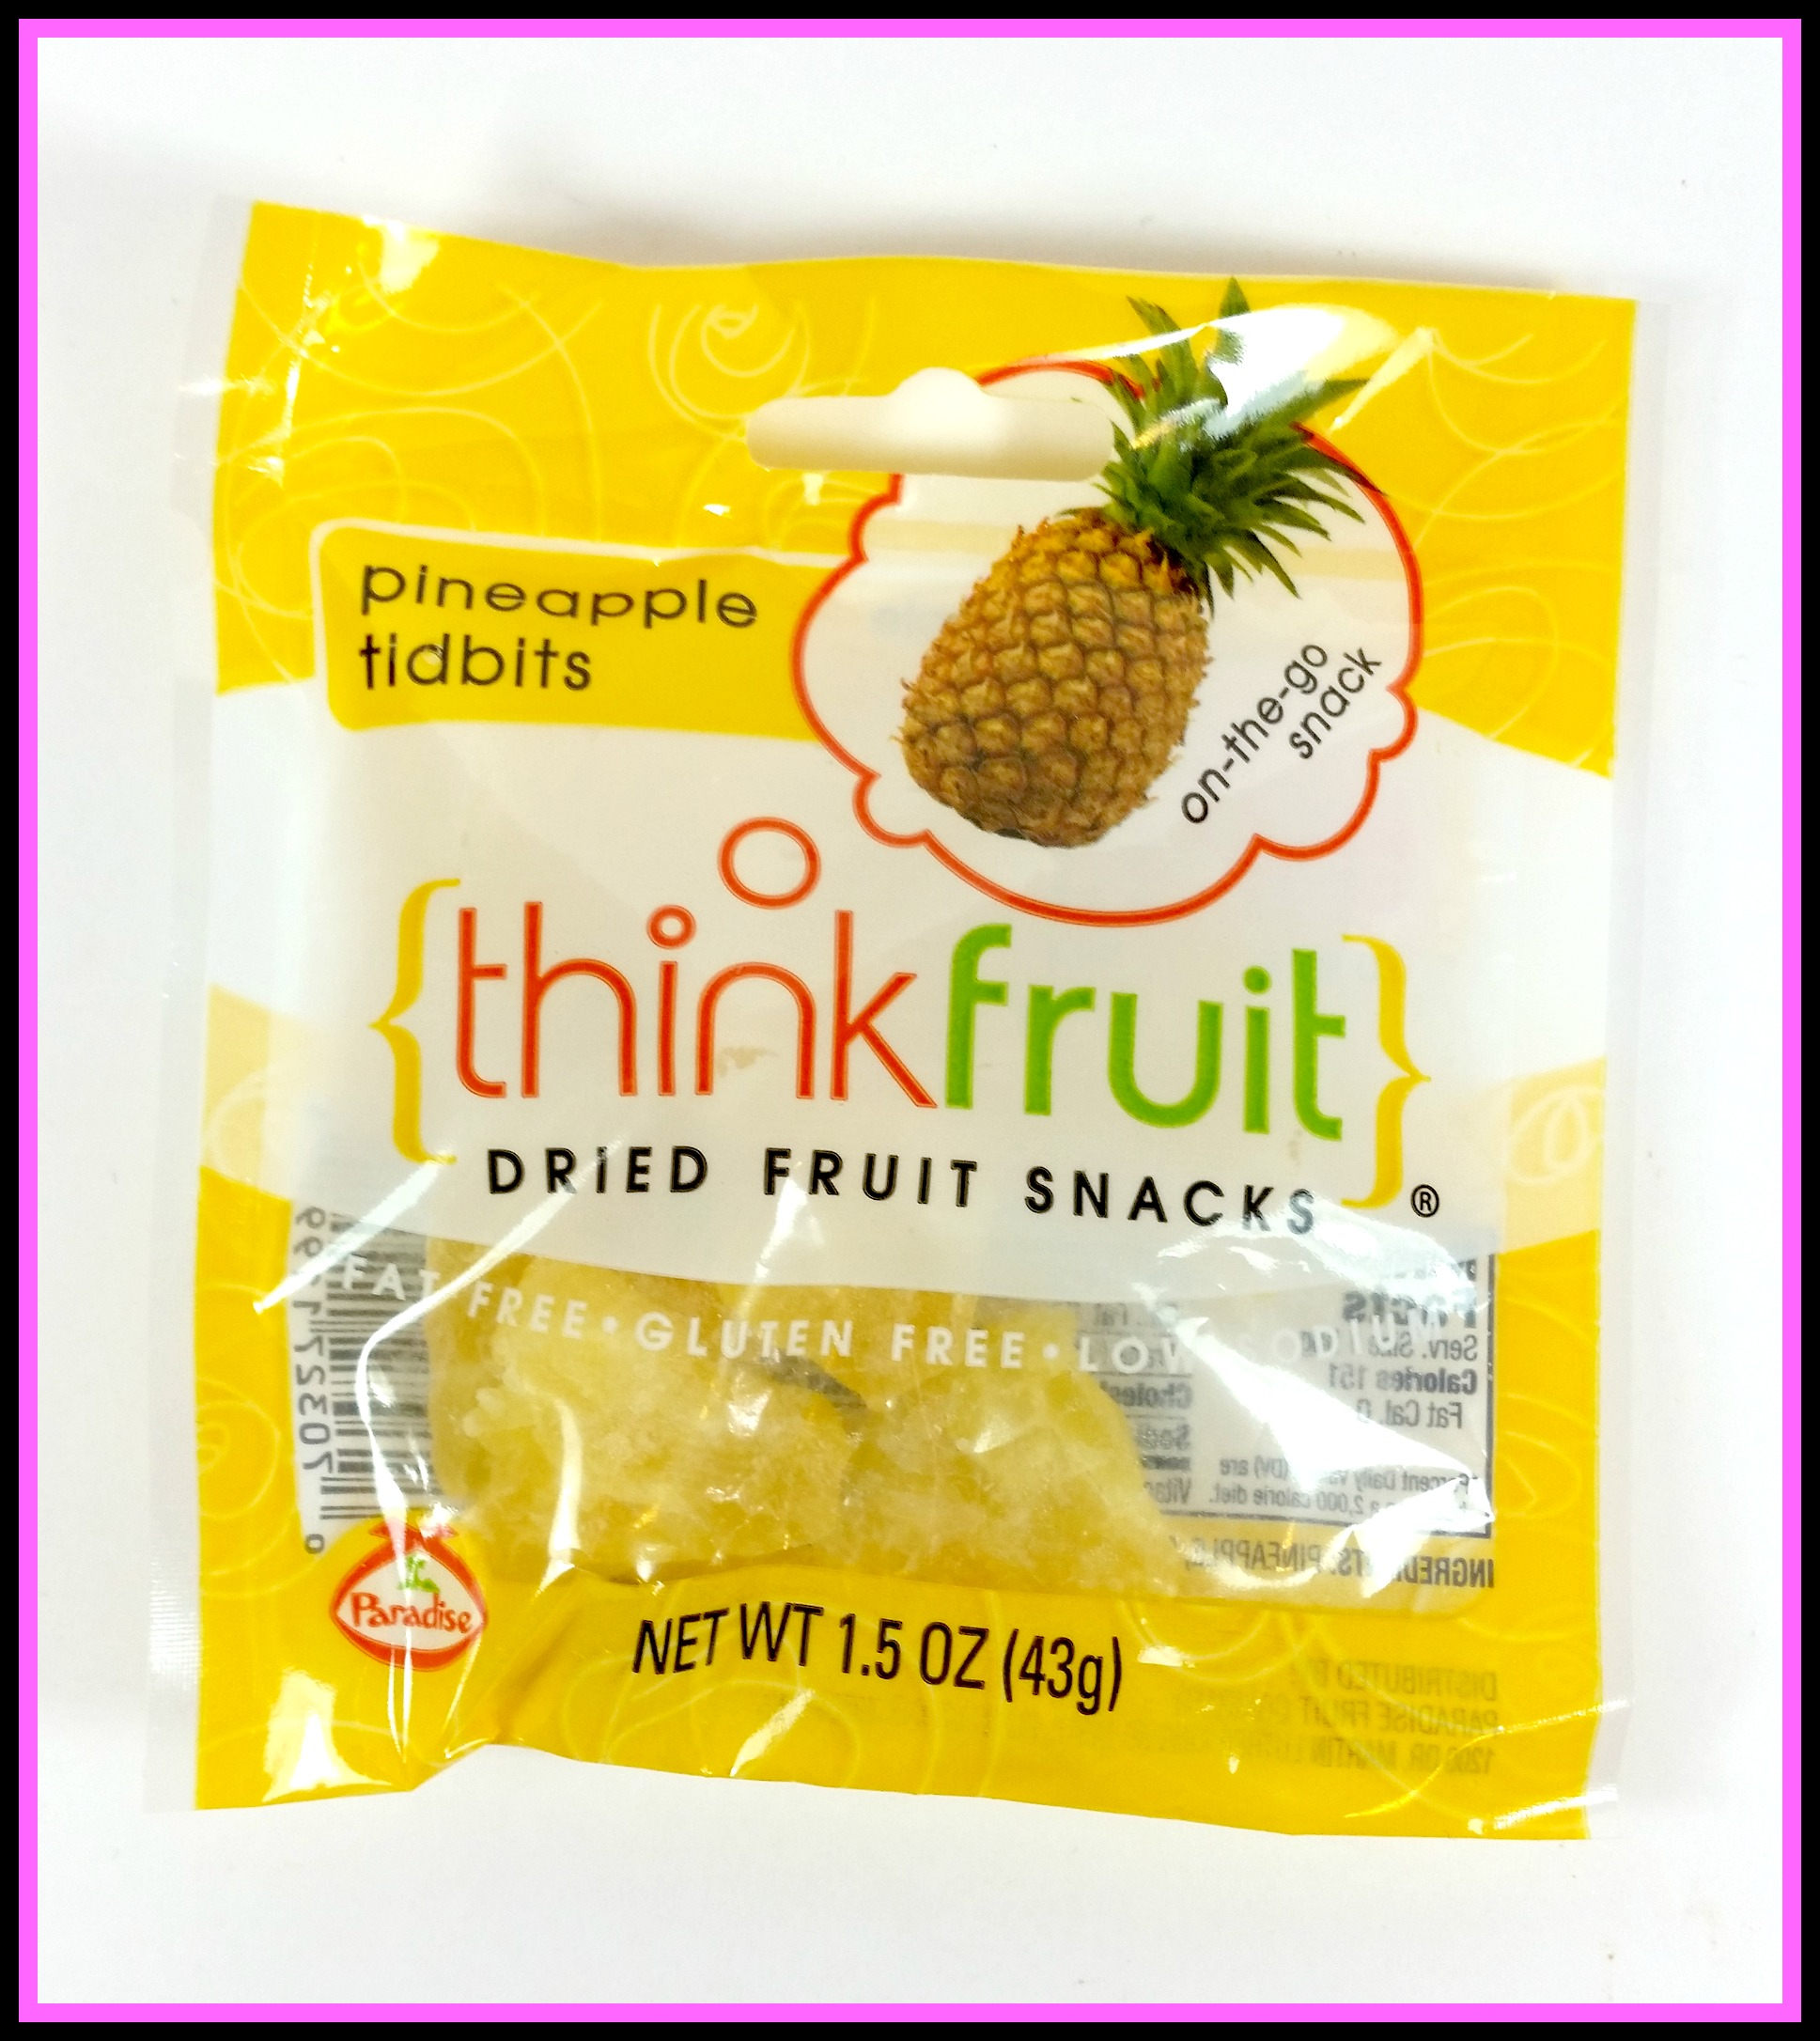 Pineapple Tidbits Urthbox